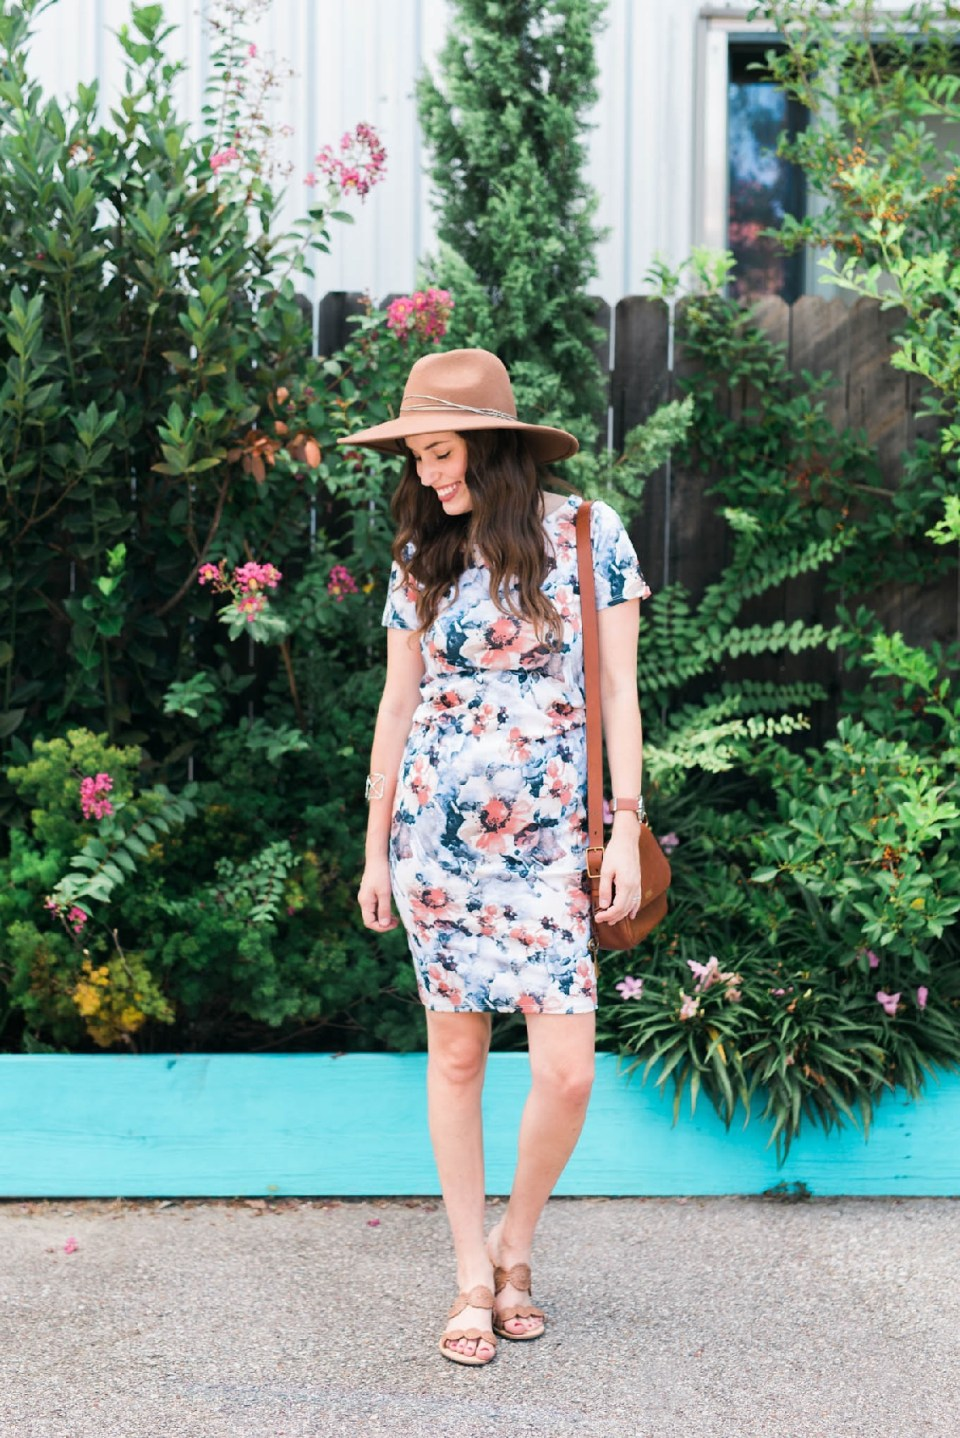 floral pinkblush maternity dress, blue and pink floral maternity dress, cute maternity outfits, cute maternity dresses, maternity outfit ideas, maternity fashion blogger, maternity fashion, houston fashion blogger